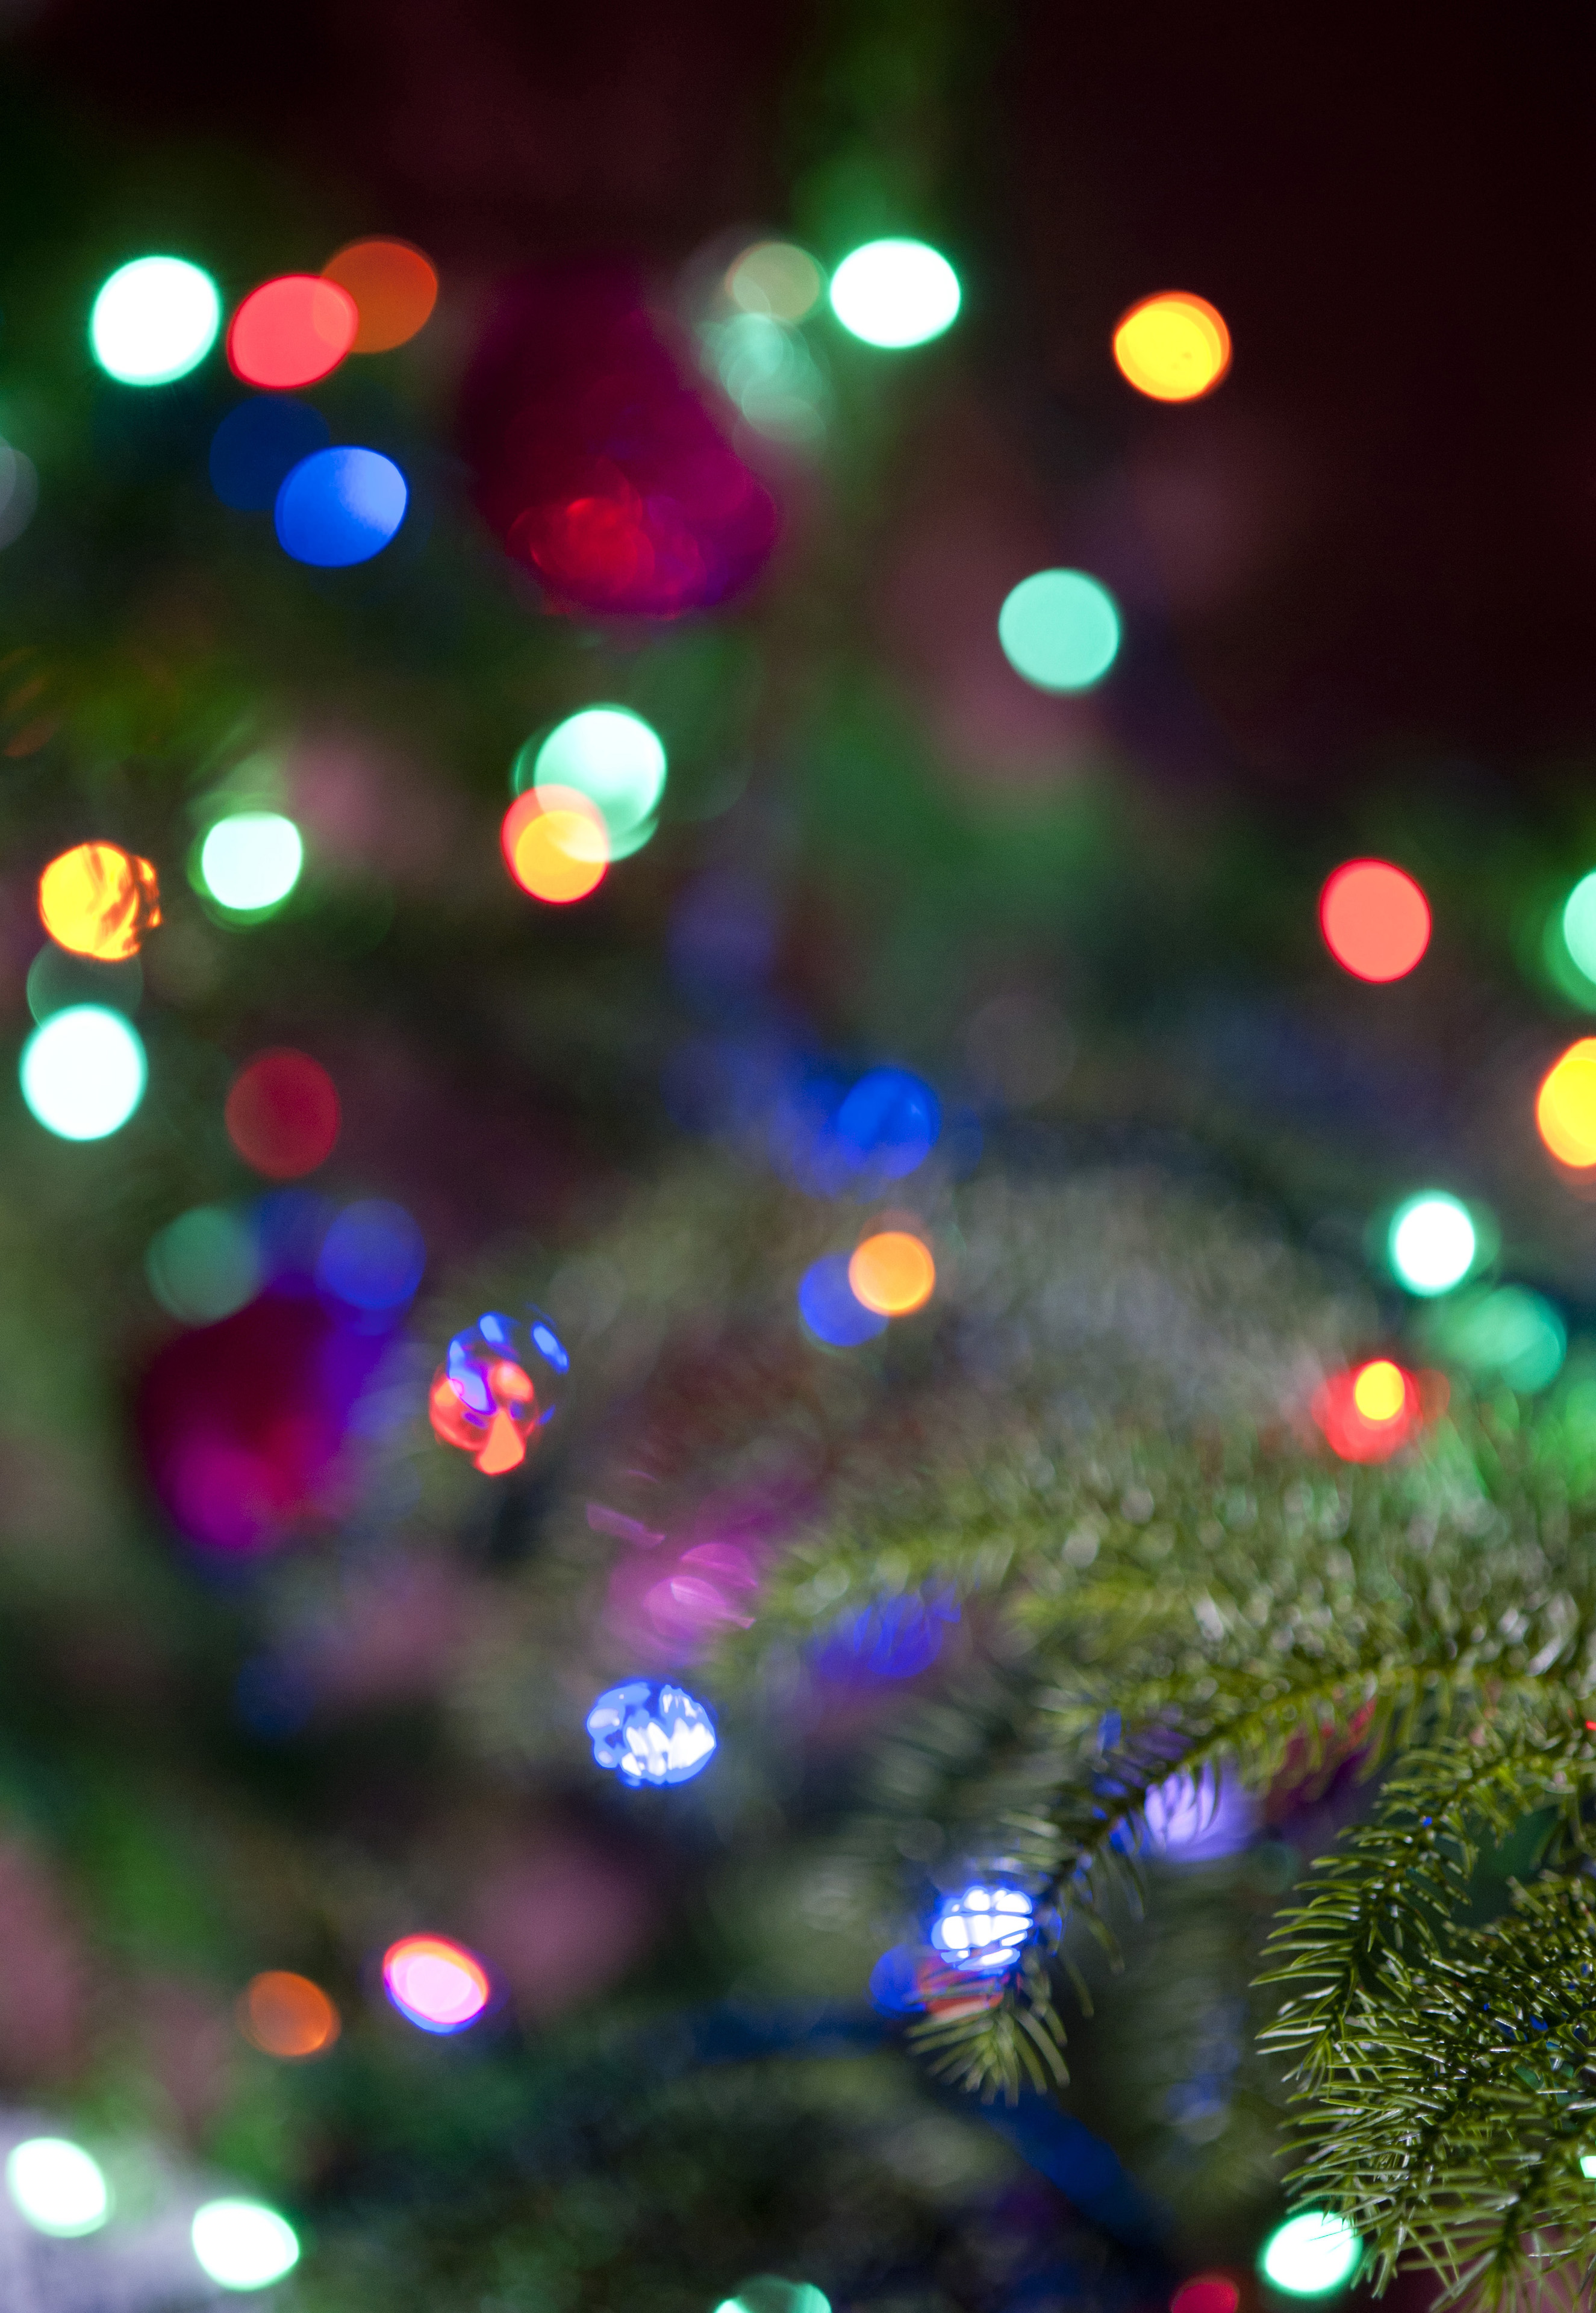 colorful sparkling christmas lights background bokeh with a branch of the christmas tree visible in the